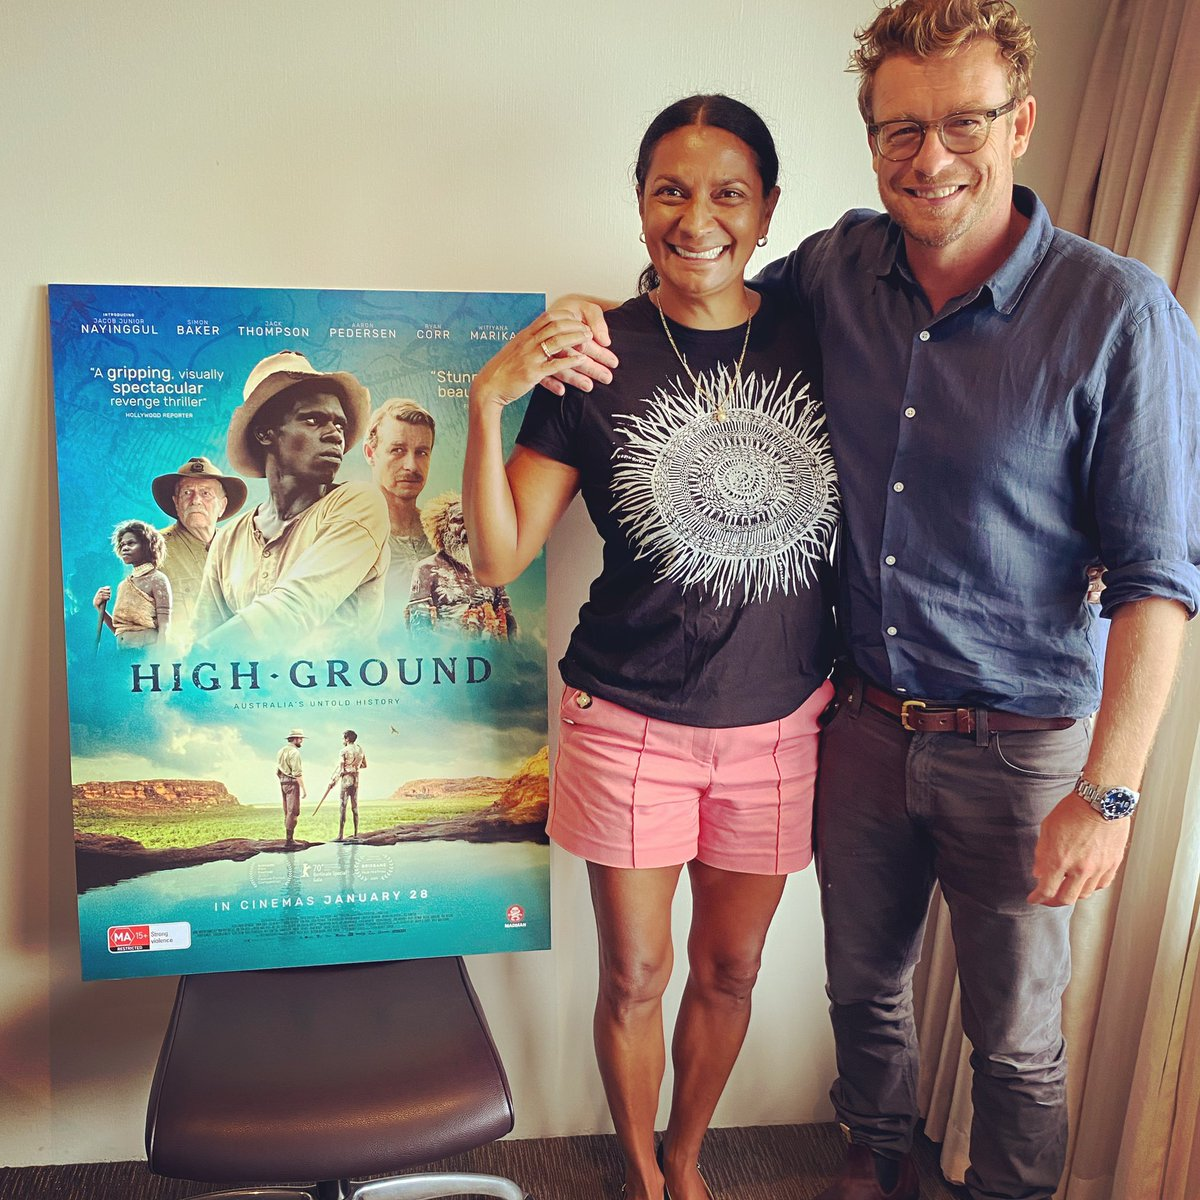 Honoured to meet and have a yarn with the incredible Simon Baker who stars in @HighGroundFilm coming to cinemas on Jan 28th. #simonbaker #novaperis #dreamwalker #thementalist